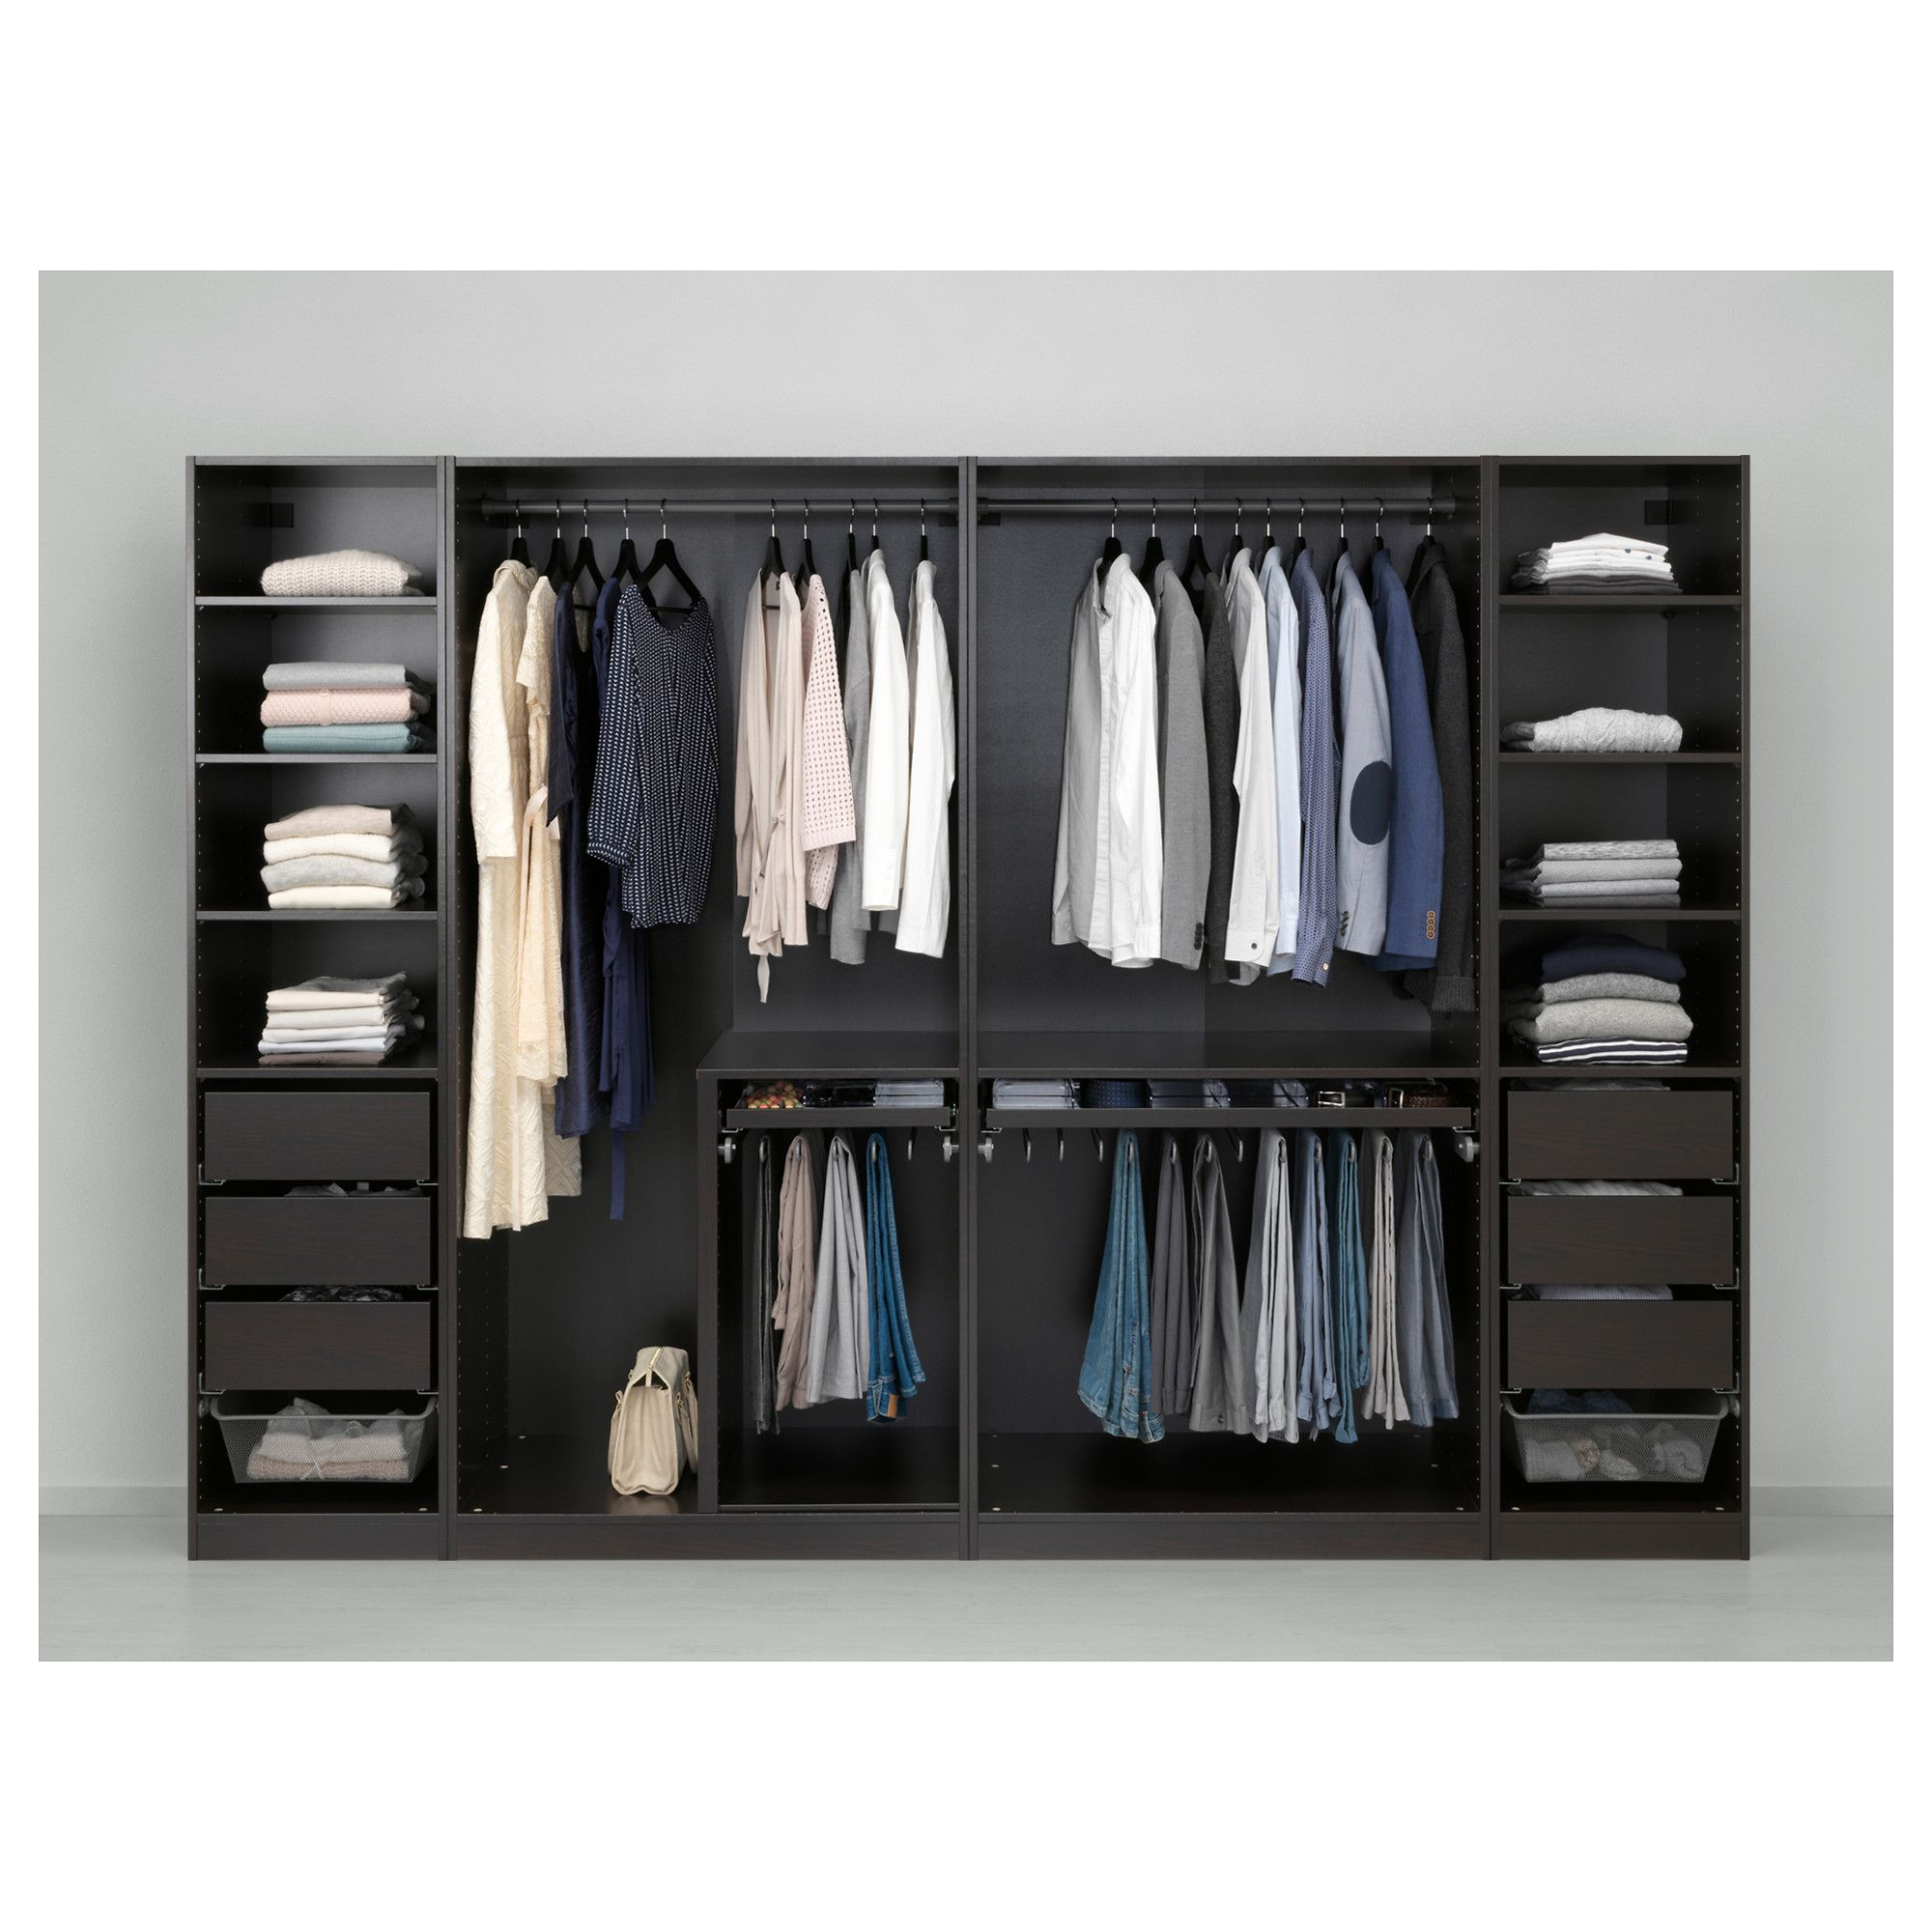 IKEA PAX Wardrobe blackbrown Undredal, Undredal glass